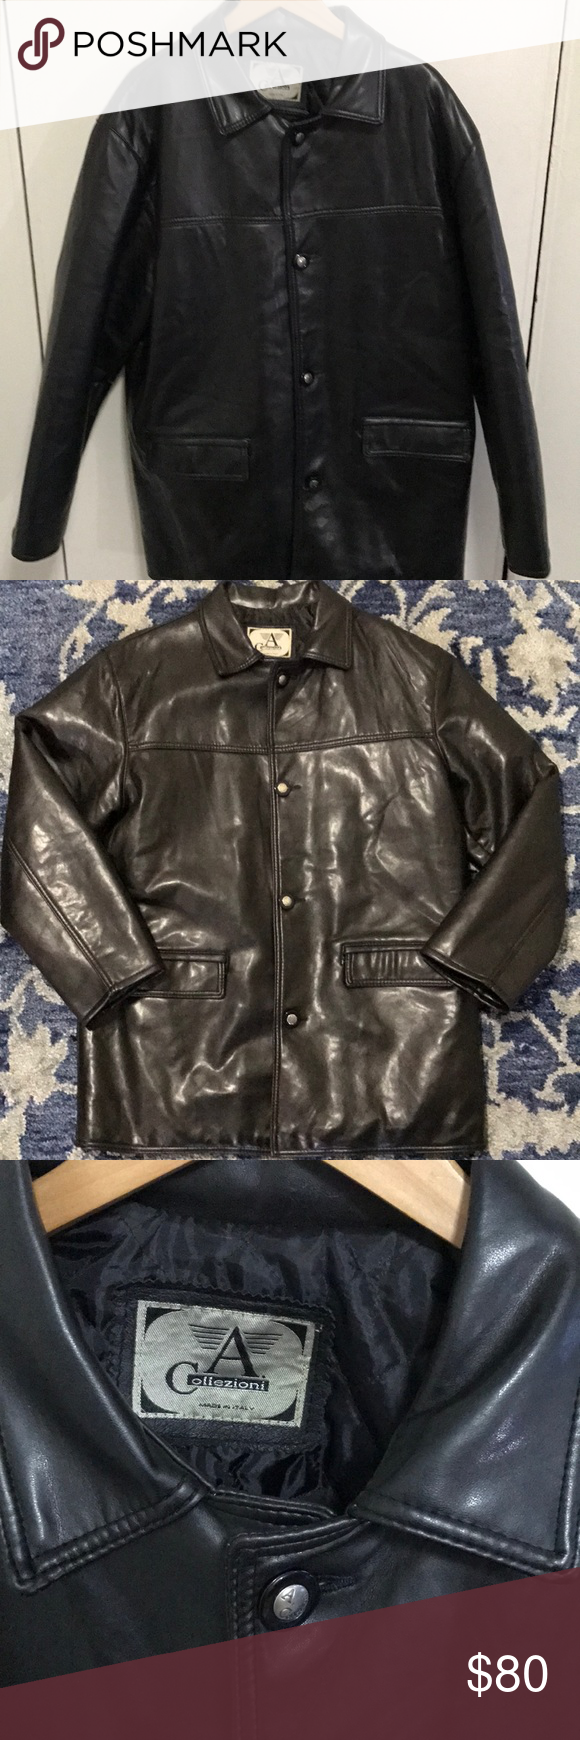 Italian leather jacket A Collezioni leather jacket made in